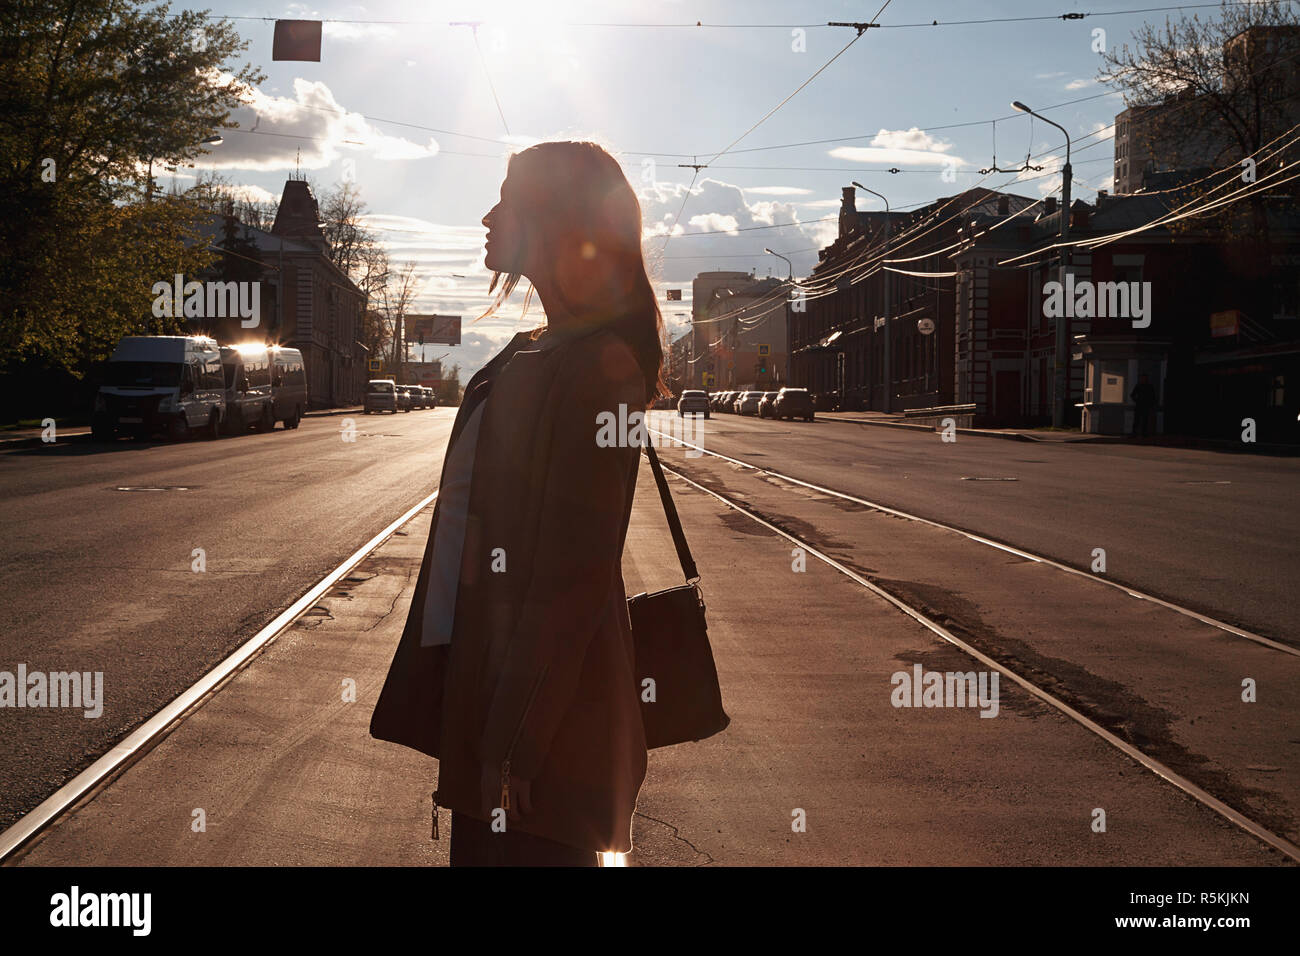 Urban girl standing out from the crowd at a city street - Stock Image